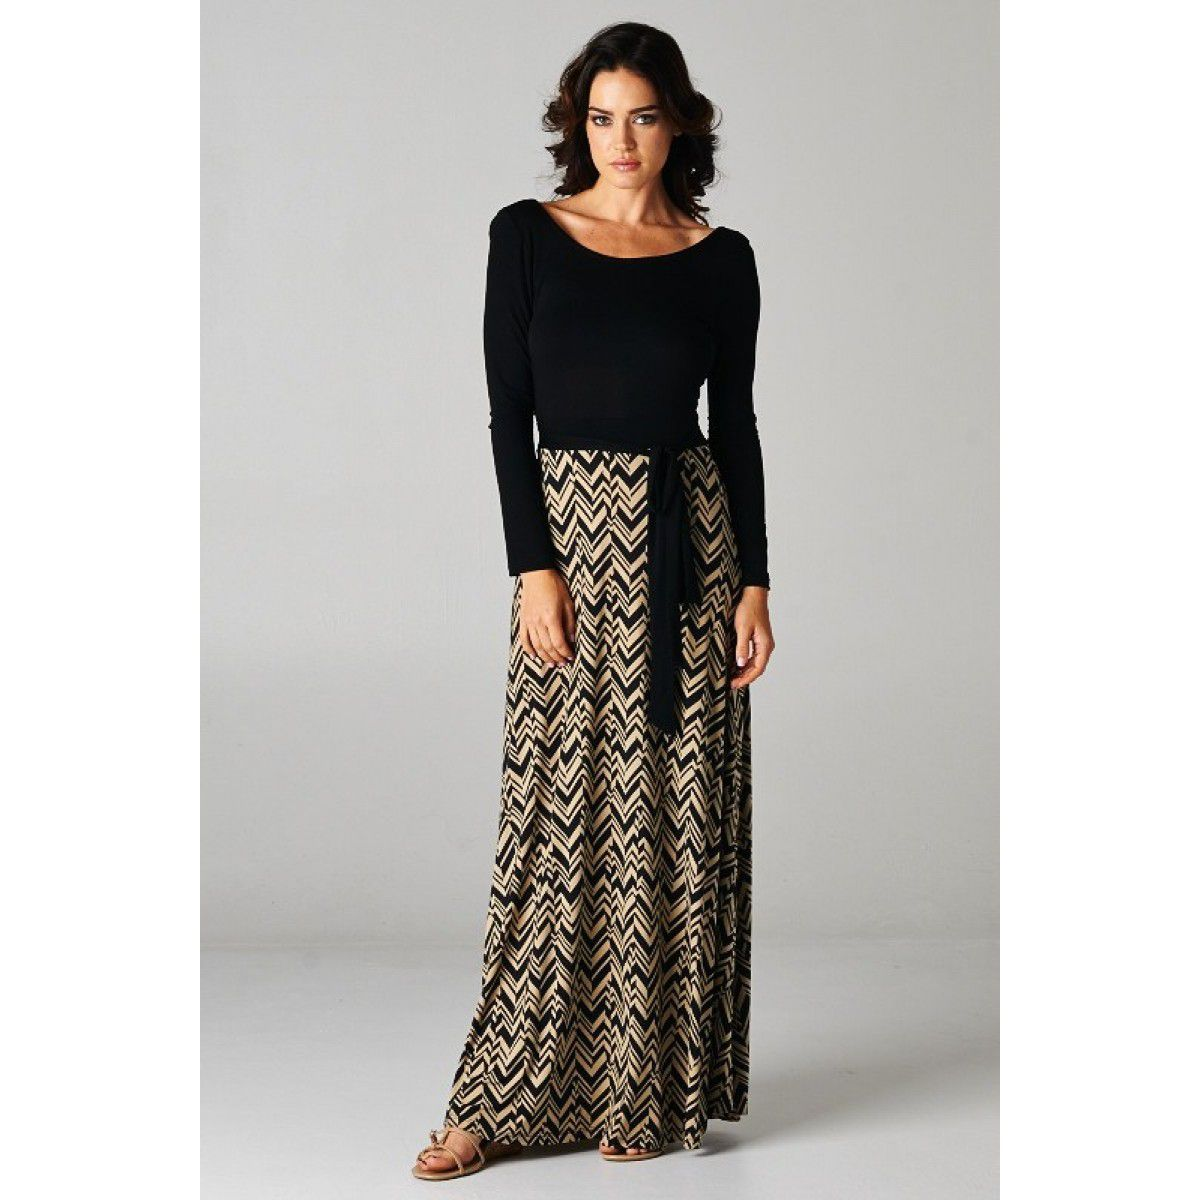 Long Skirts: Free Shipping on orders over $45 at hereyfiletk.gq - Your Online Skirts Store! Get 5% in rewards with Club O!